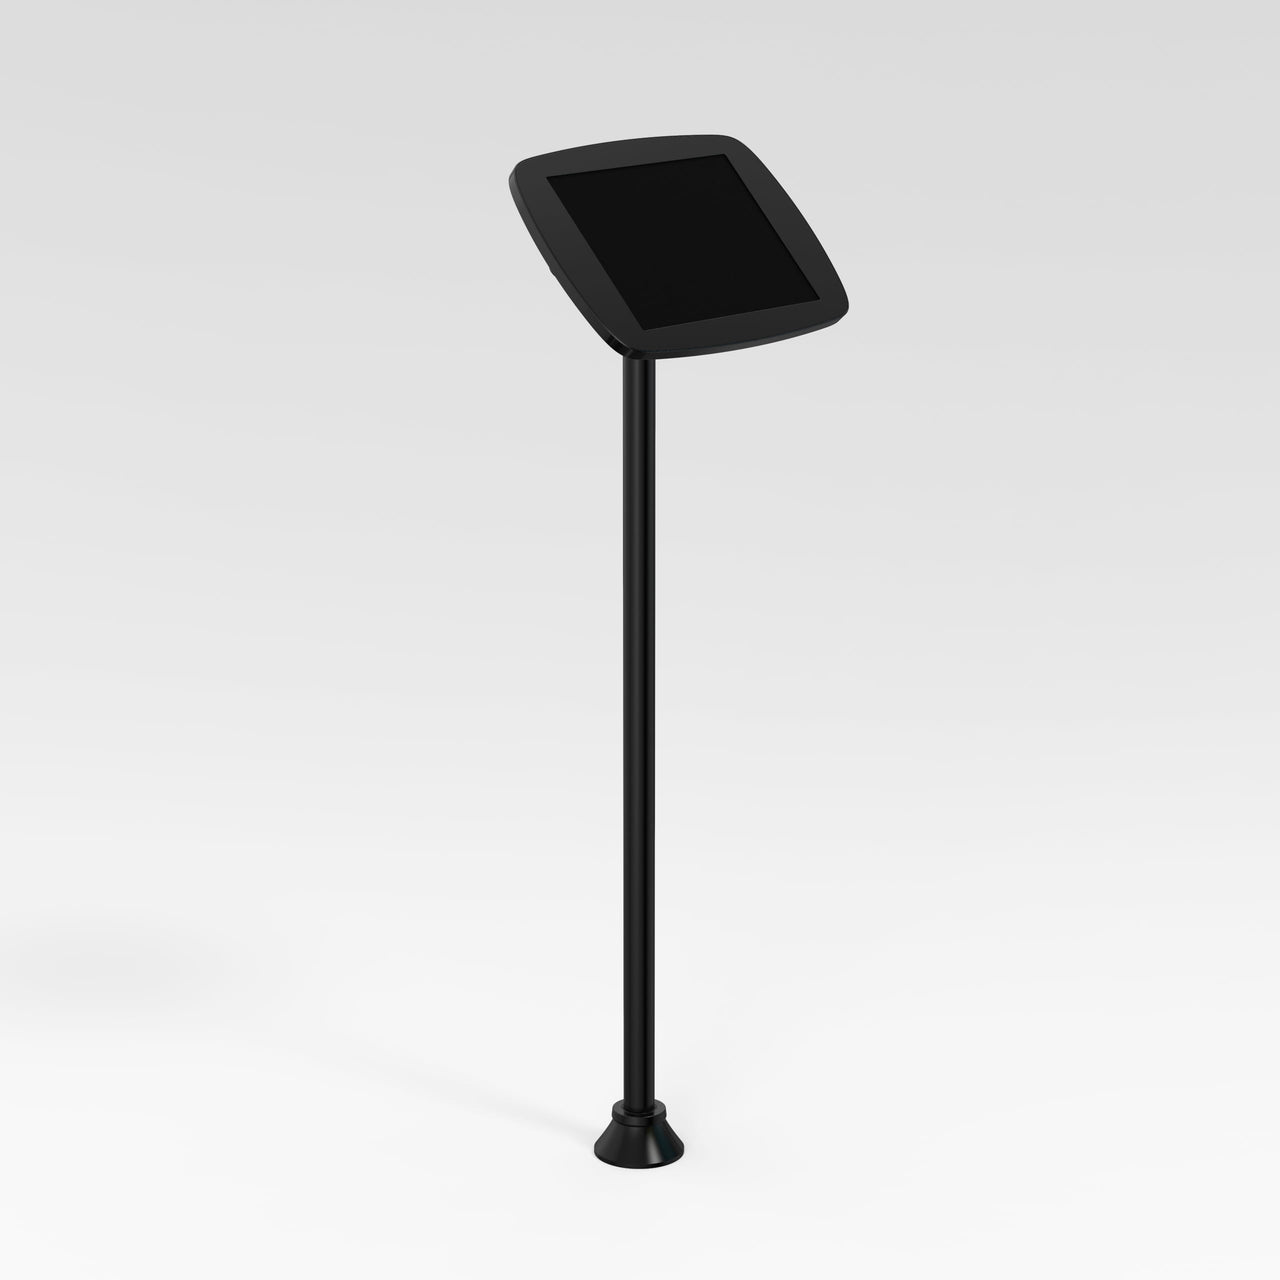 Bouncepad Floorstanding Slim - A secure tablet & iPad floor stand  in black.